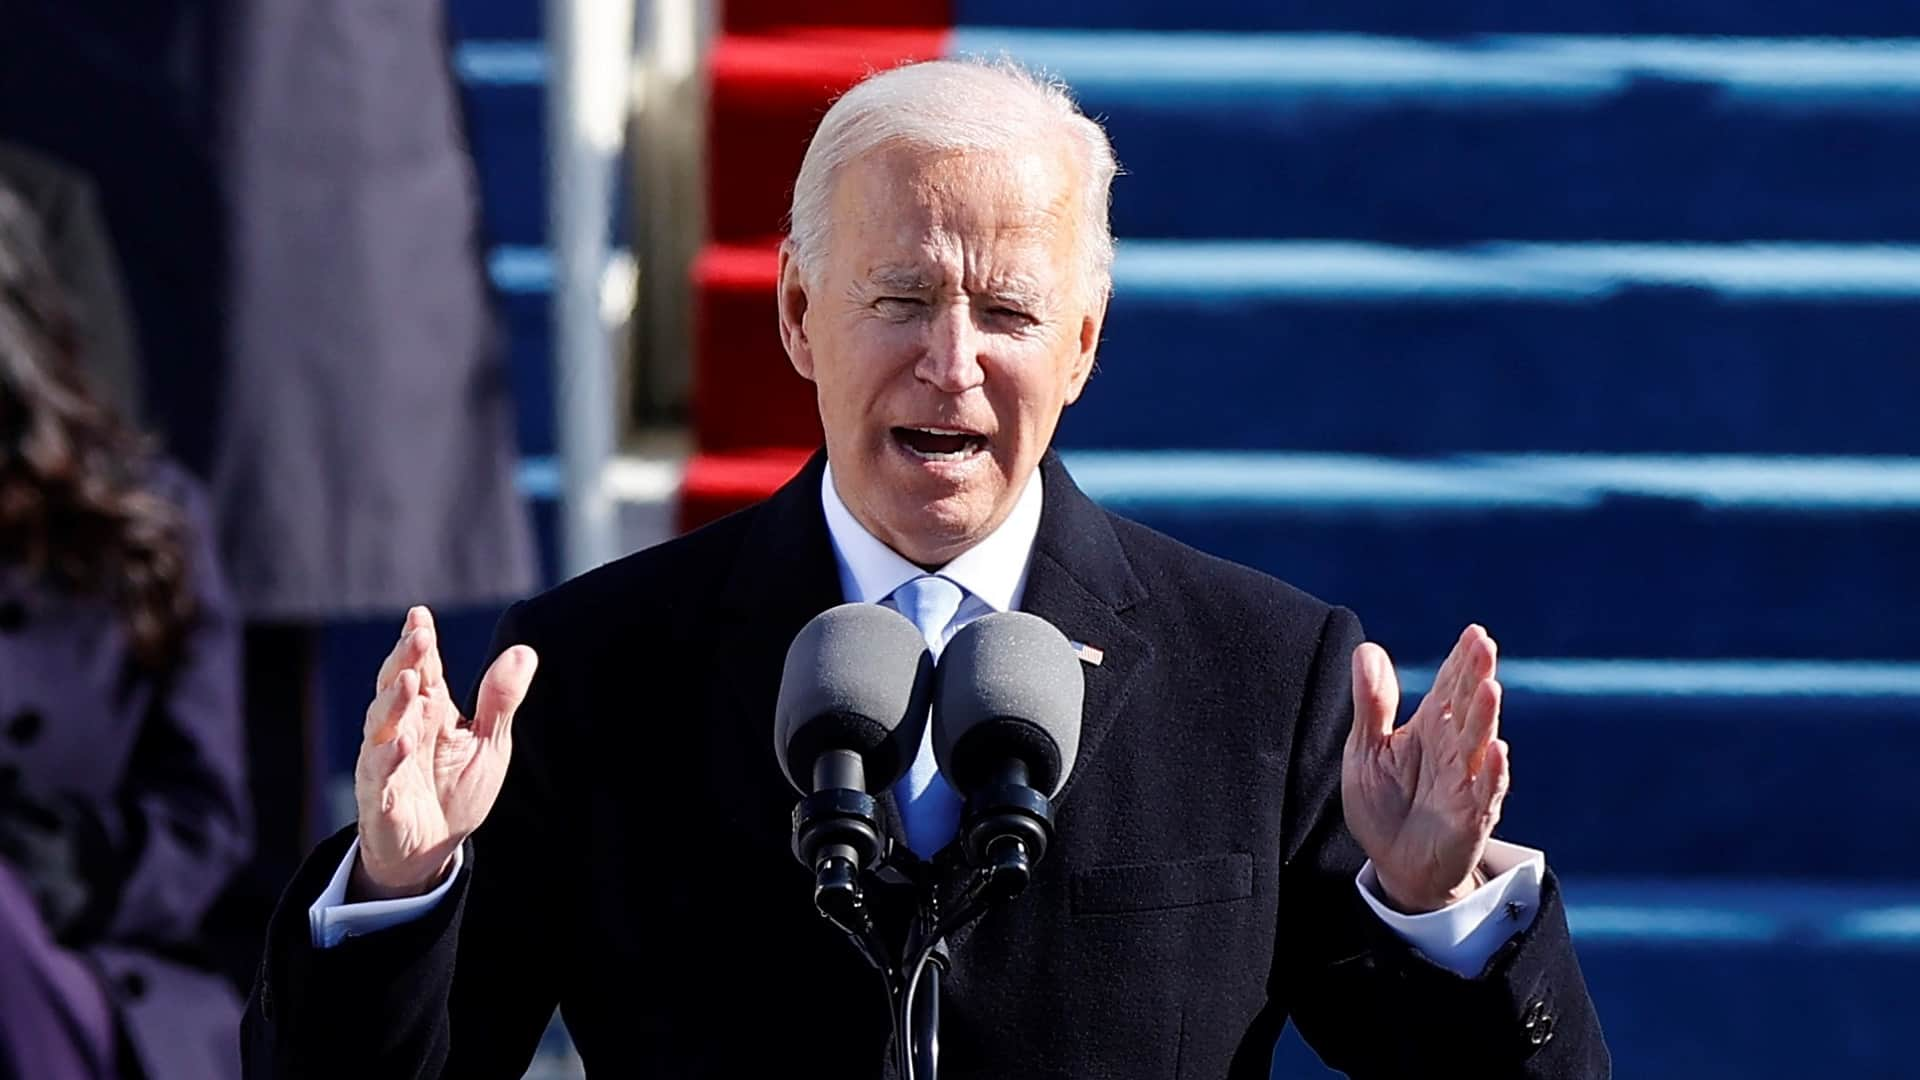 U.S. President, Joe Biden (Photo Credit: CBC.ca)